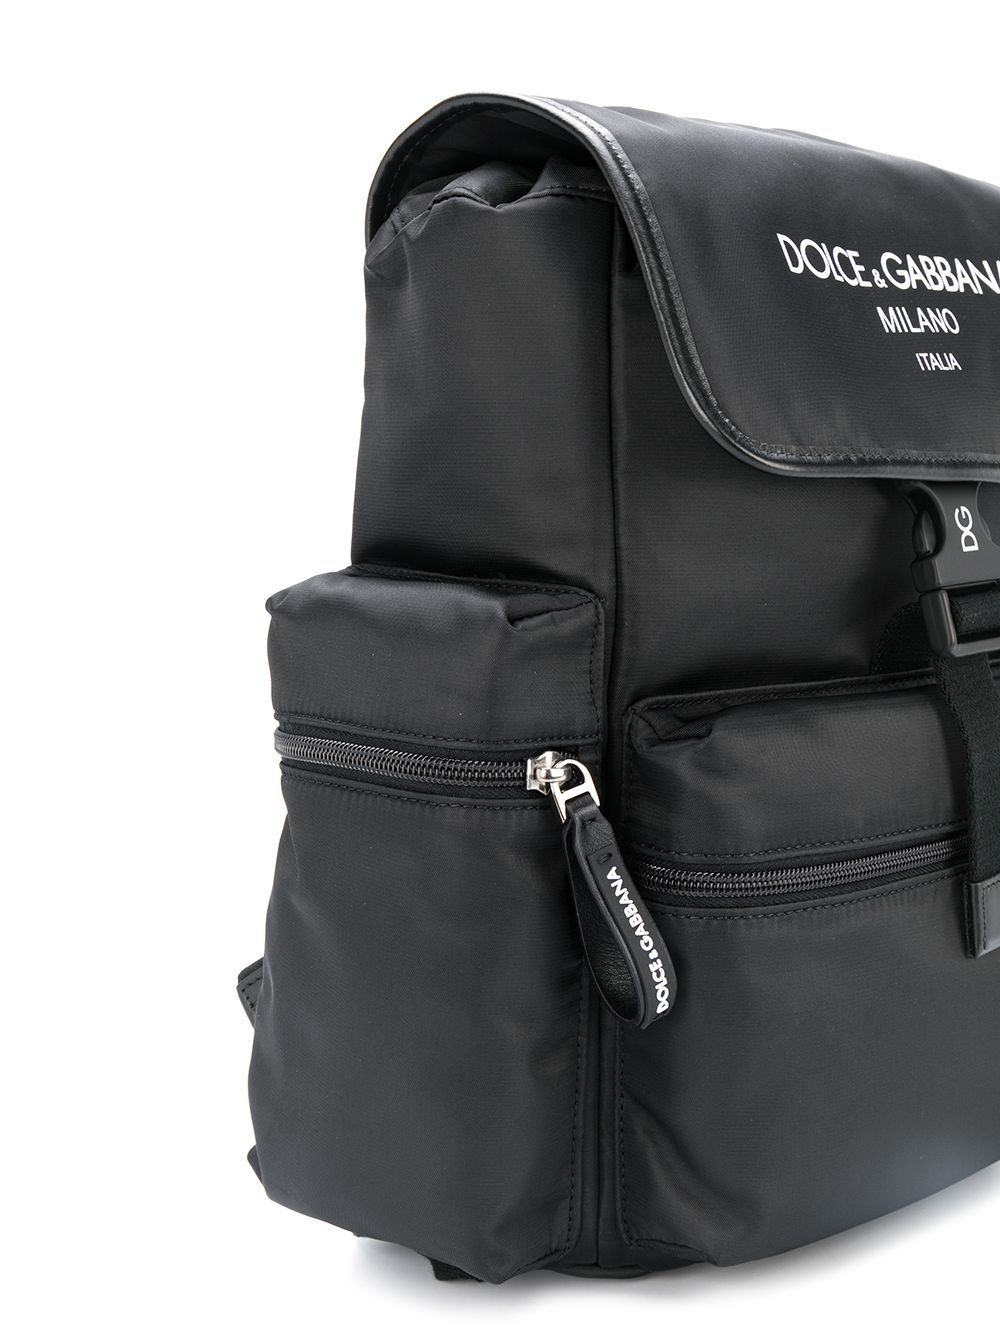 DOLCE & GABBANA KIDS Logo Backpack Black - Maison De Fashion